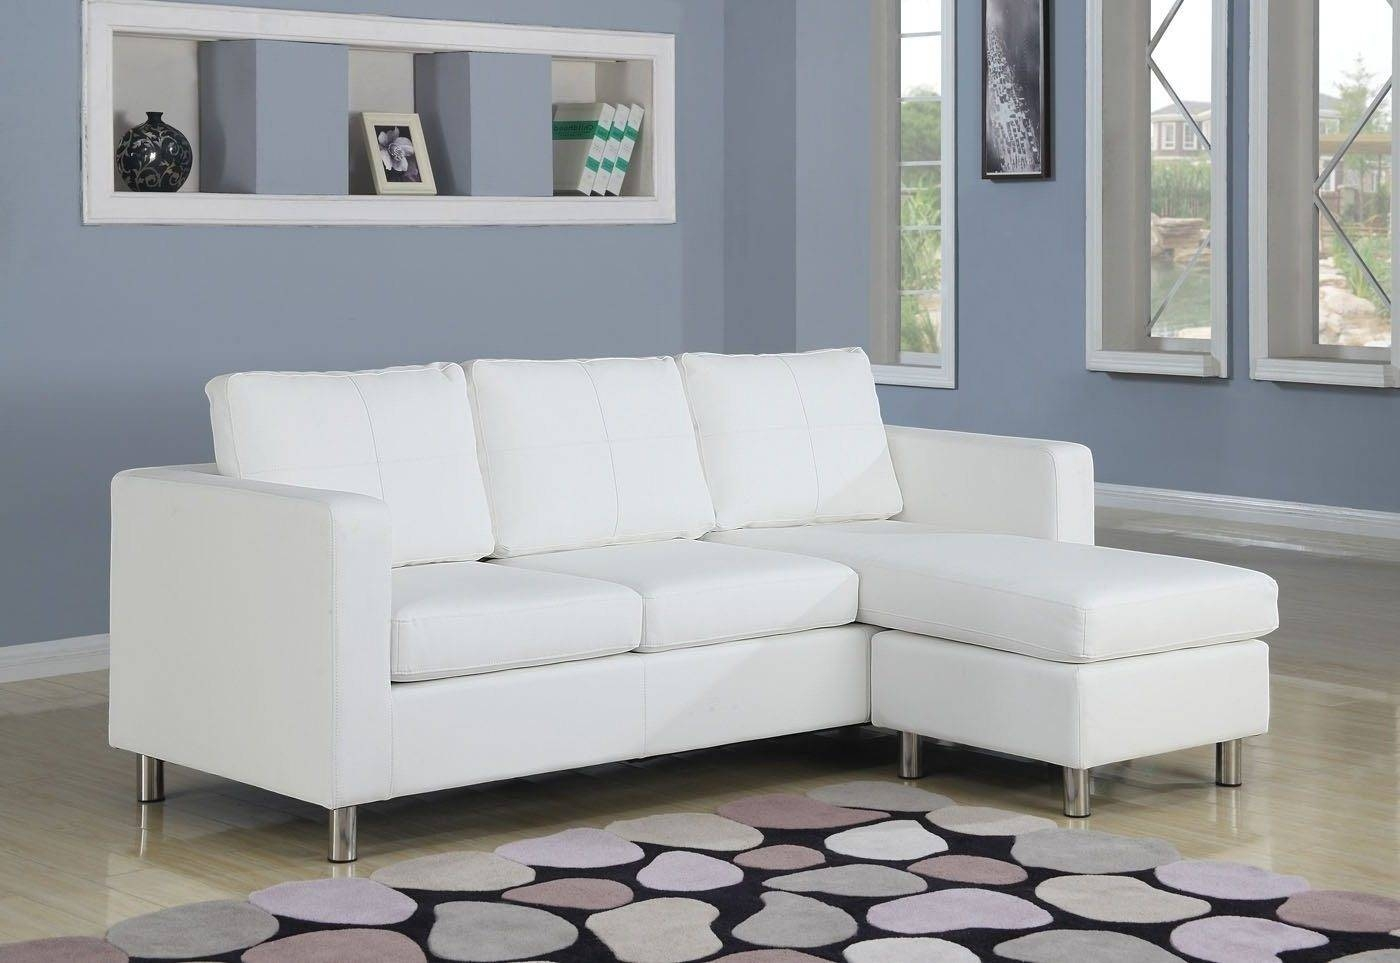 Sectional Sleeper Sofas For Small Spaces - Video And Photos for Tiny Sofas (Image 9 of 30)